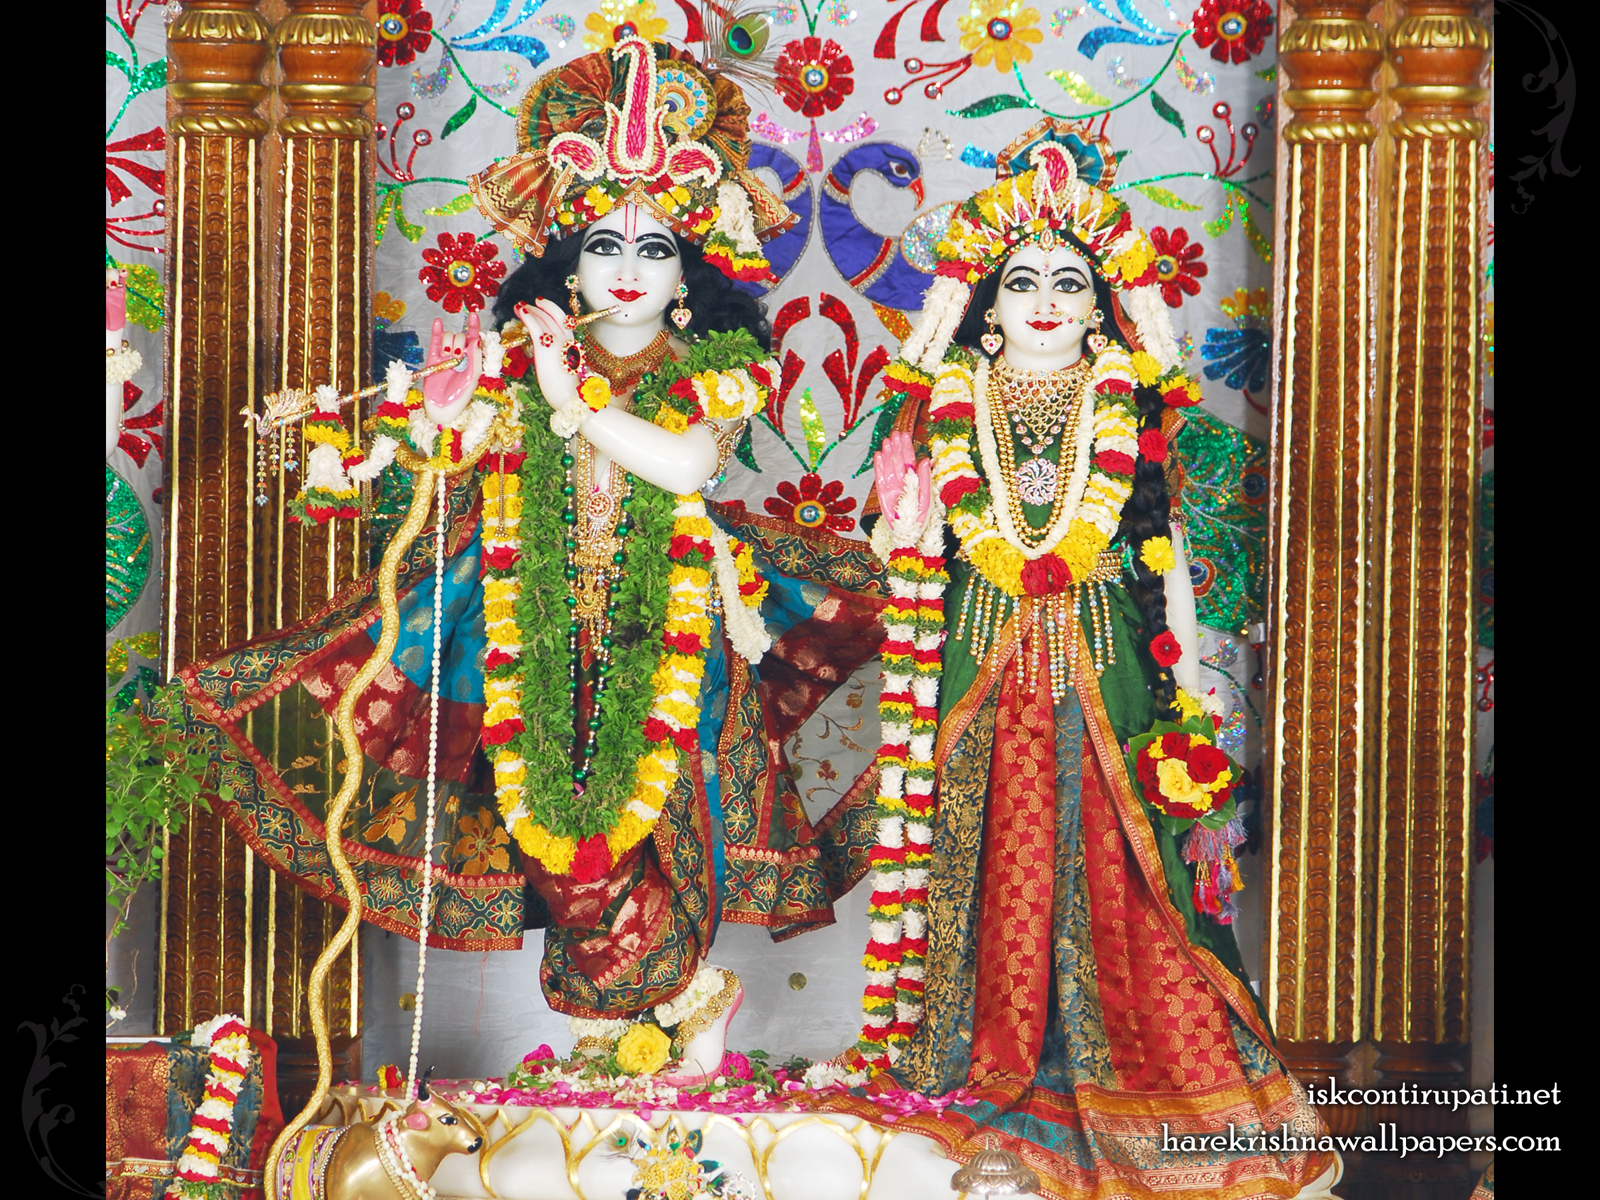 Sri Sri Radha Govinda Wallpaper (004) Size1600x1200 Download